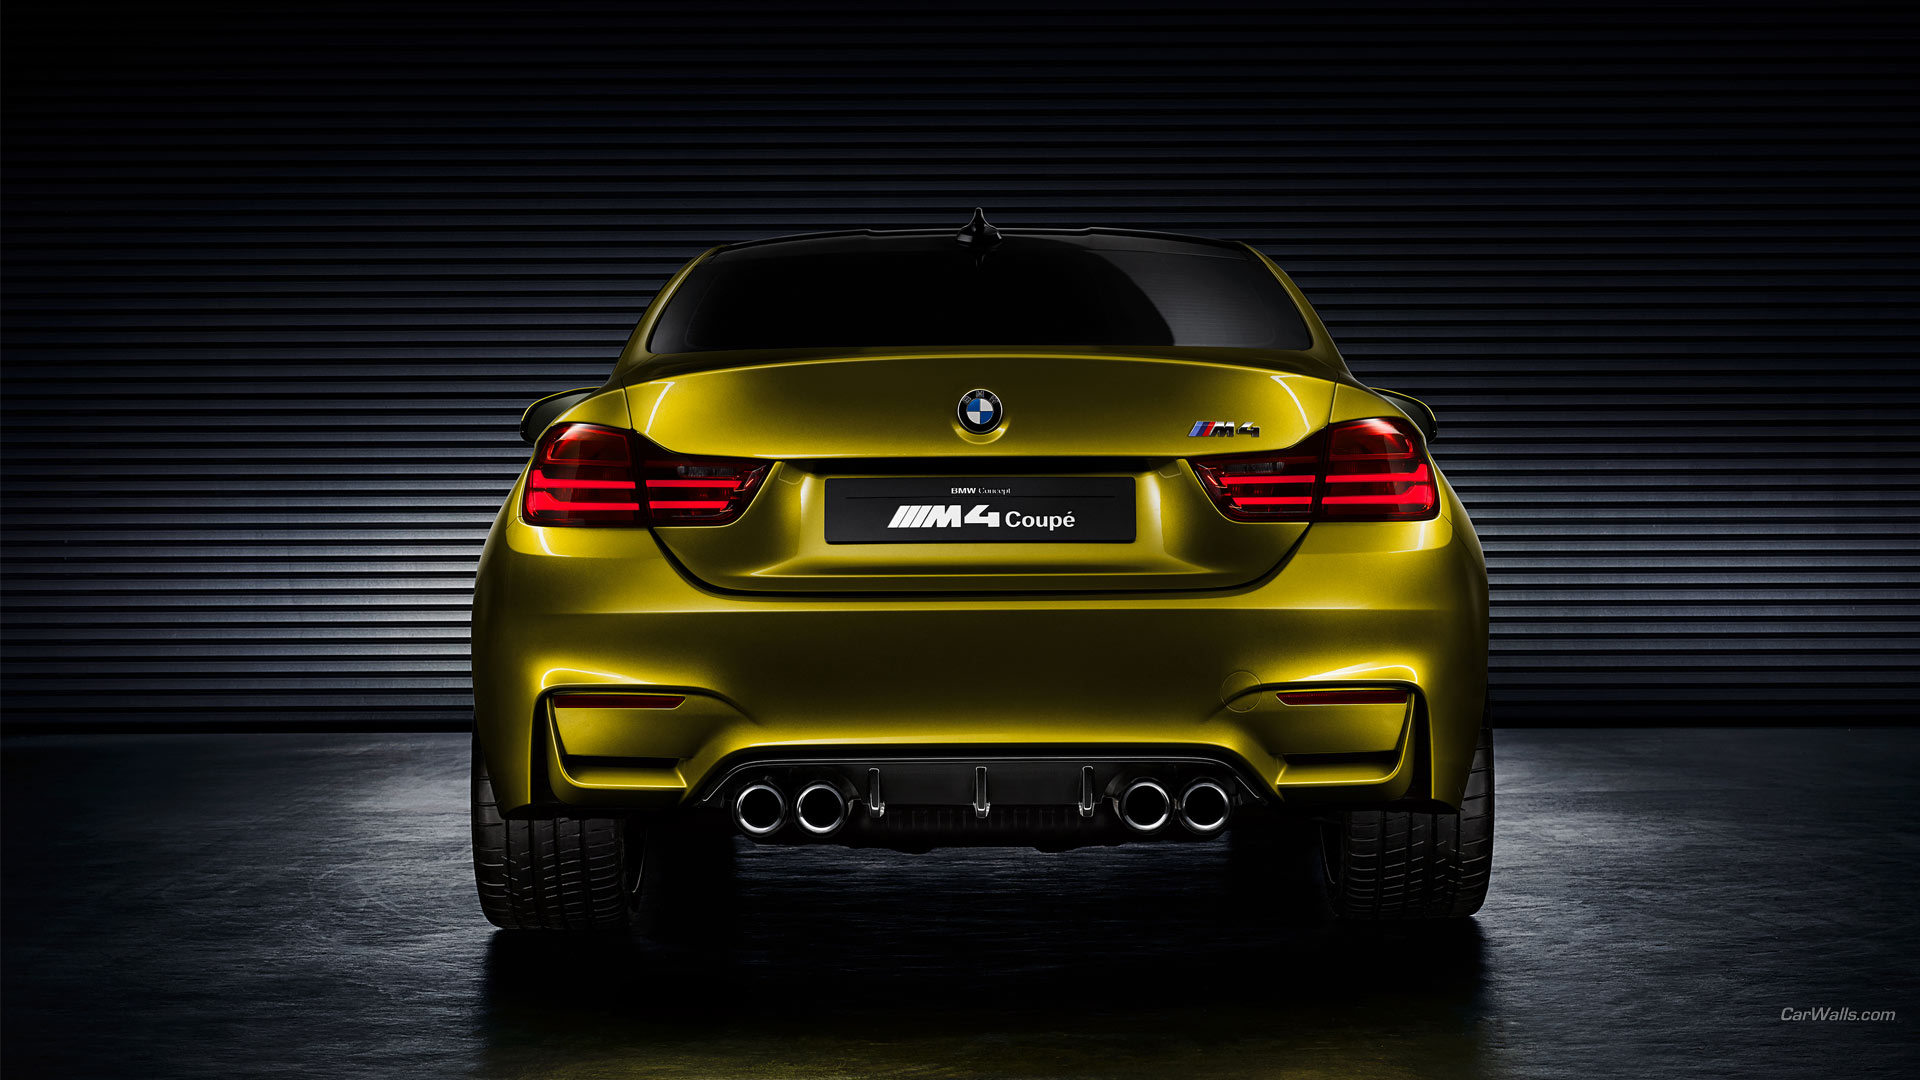 2013 BMW M4 Coupe Concept Full HD Wallpaper and ...